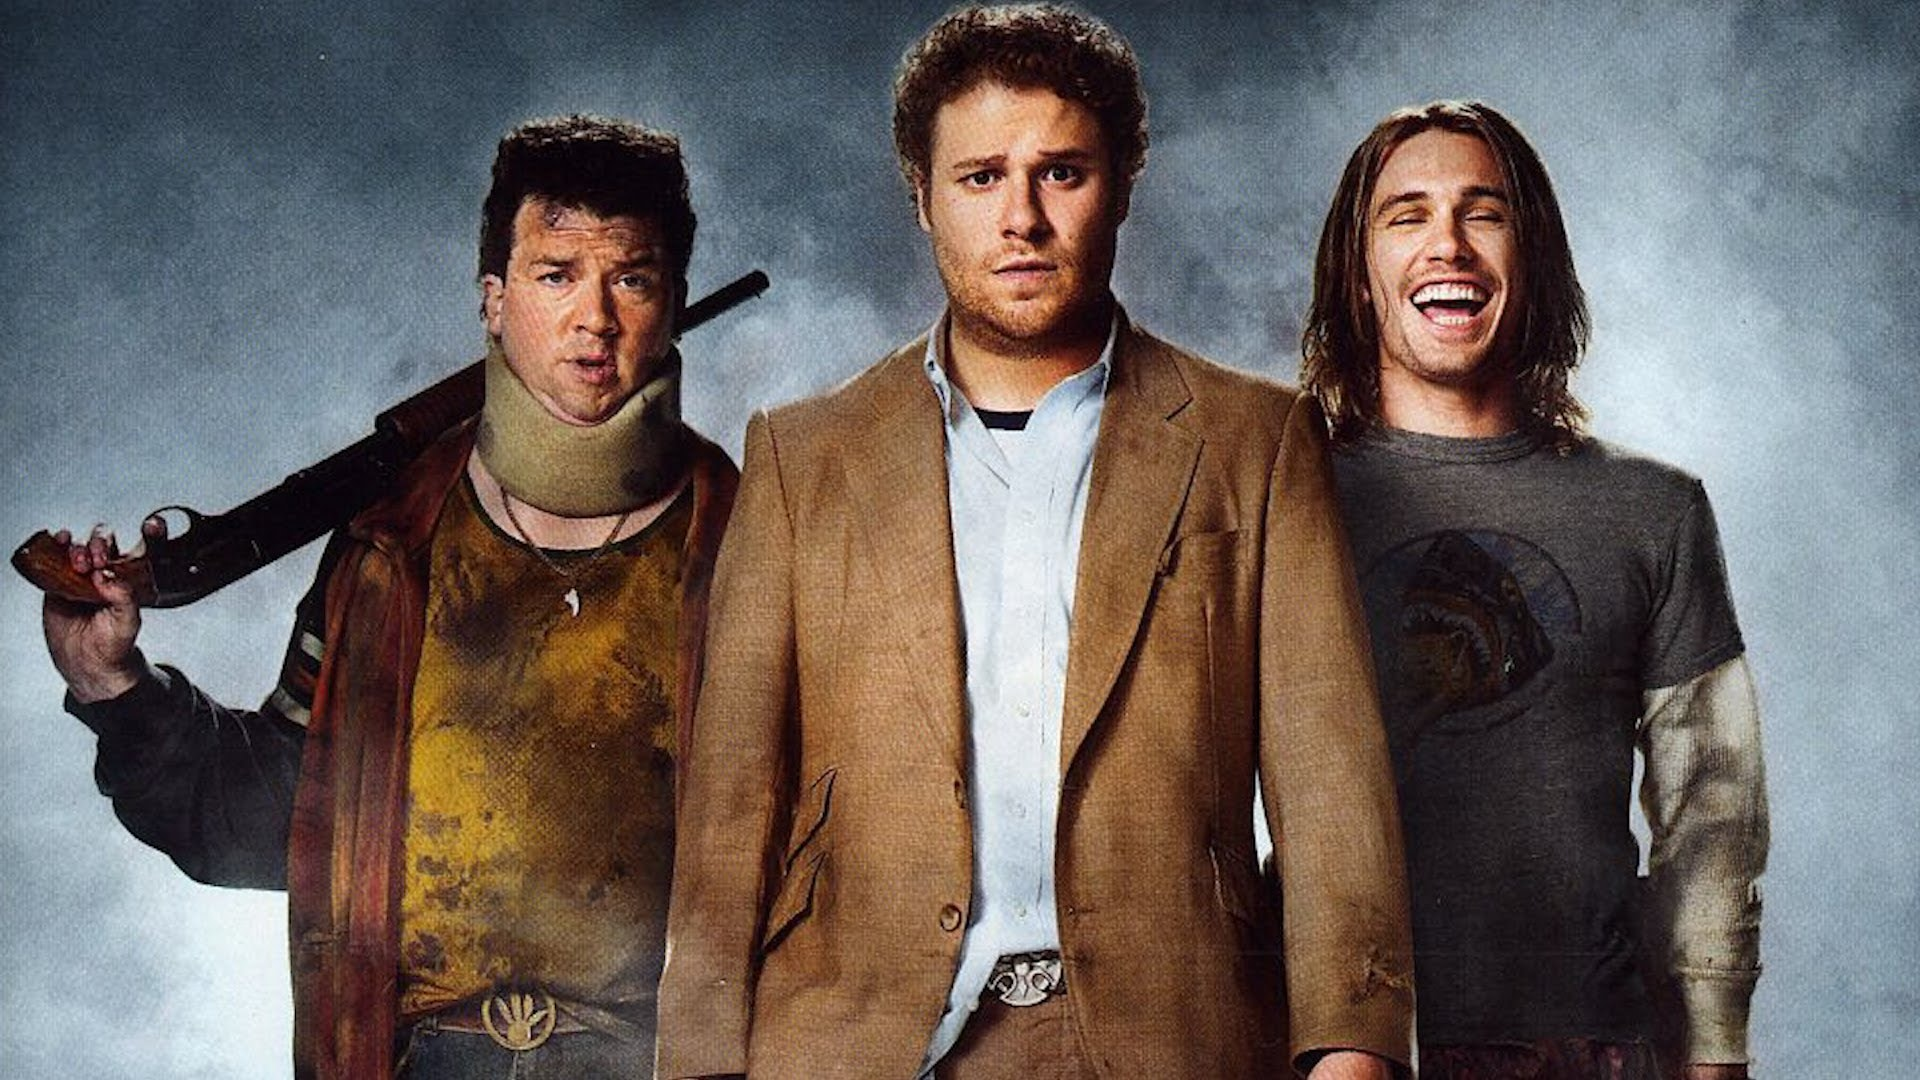 Pineapple express this is so exciting